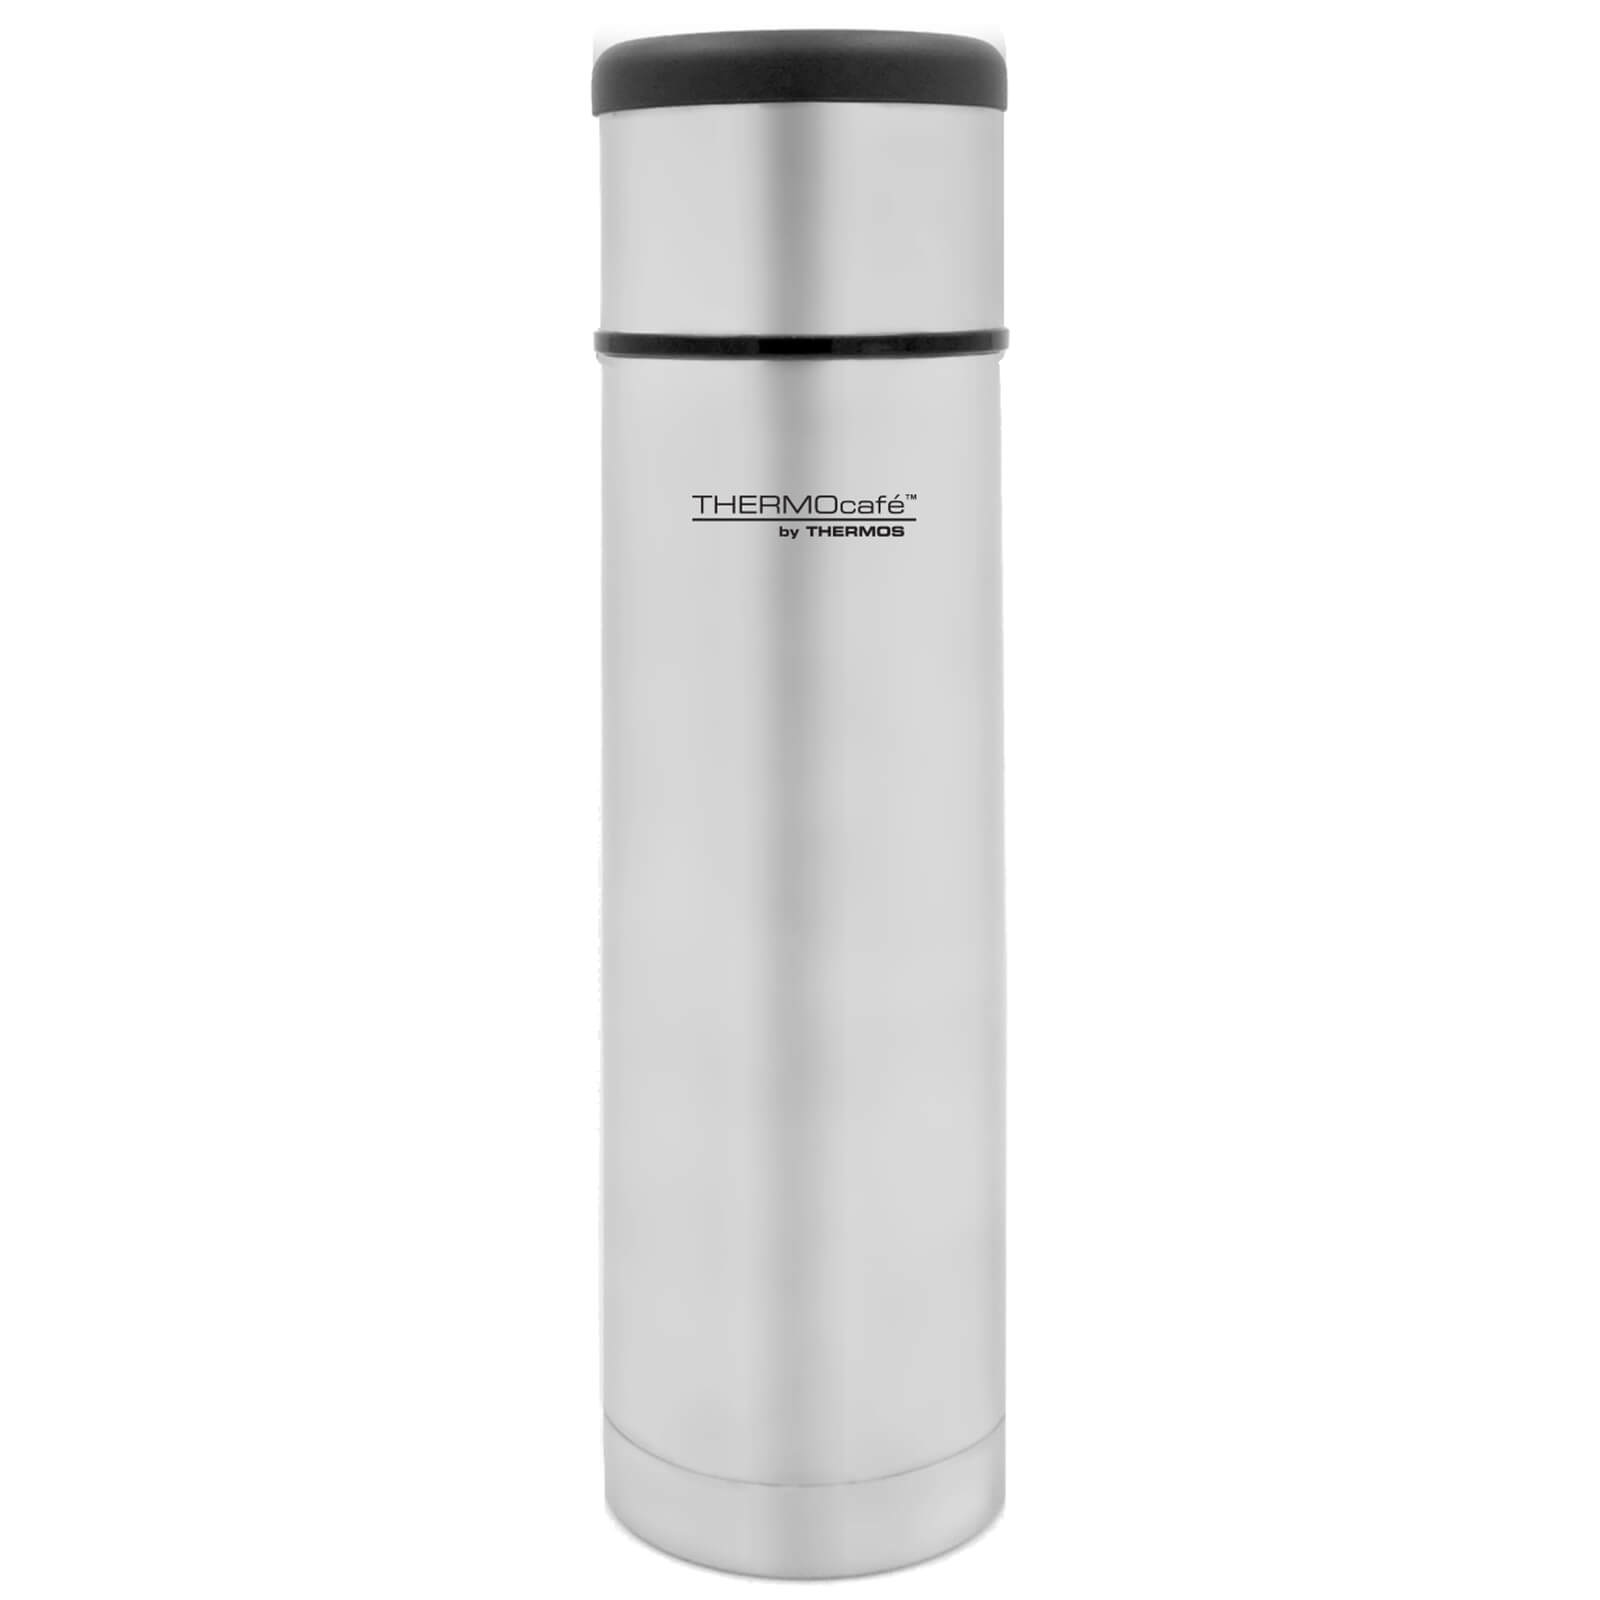 Thermos ThermoCafe Flat Top Stainless Steel Flask 500ml